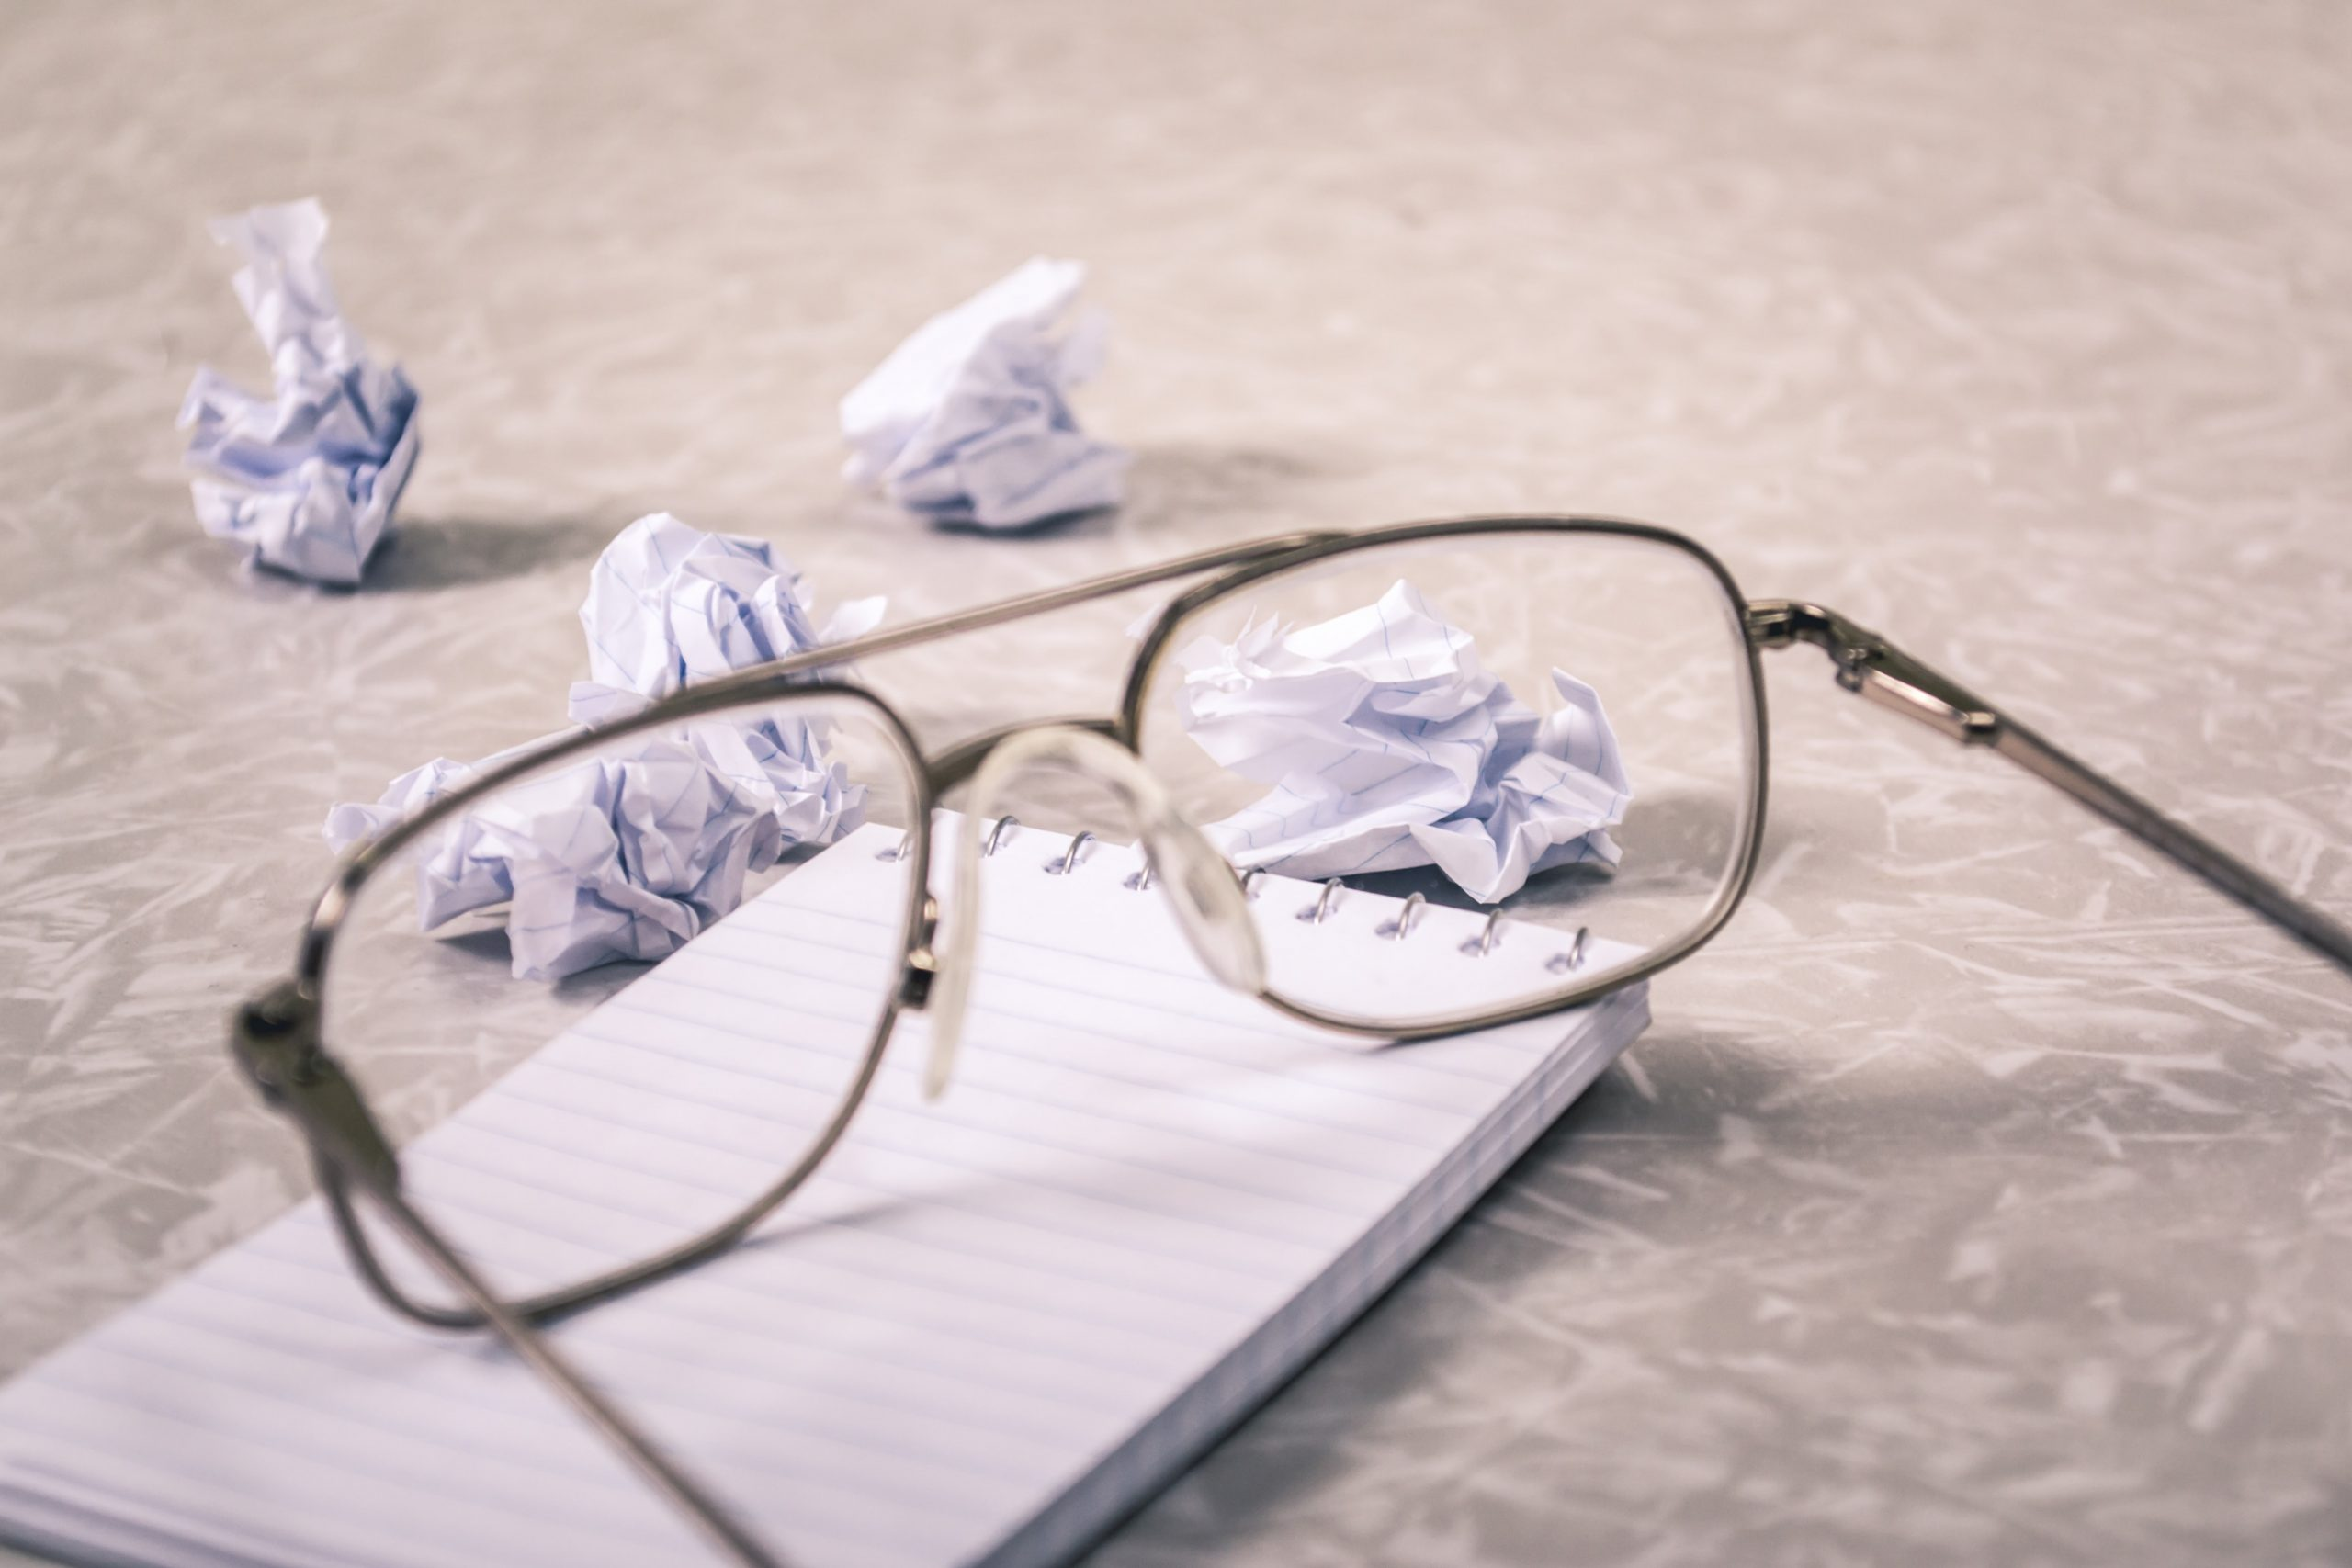 Glasses with a notepad and wads of paper